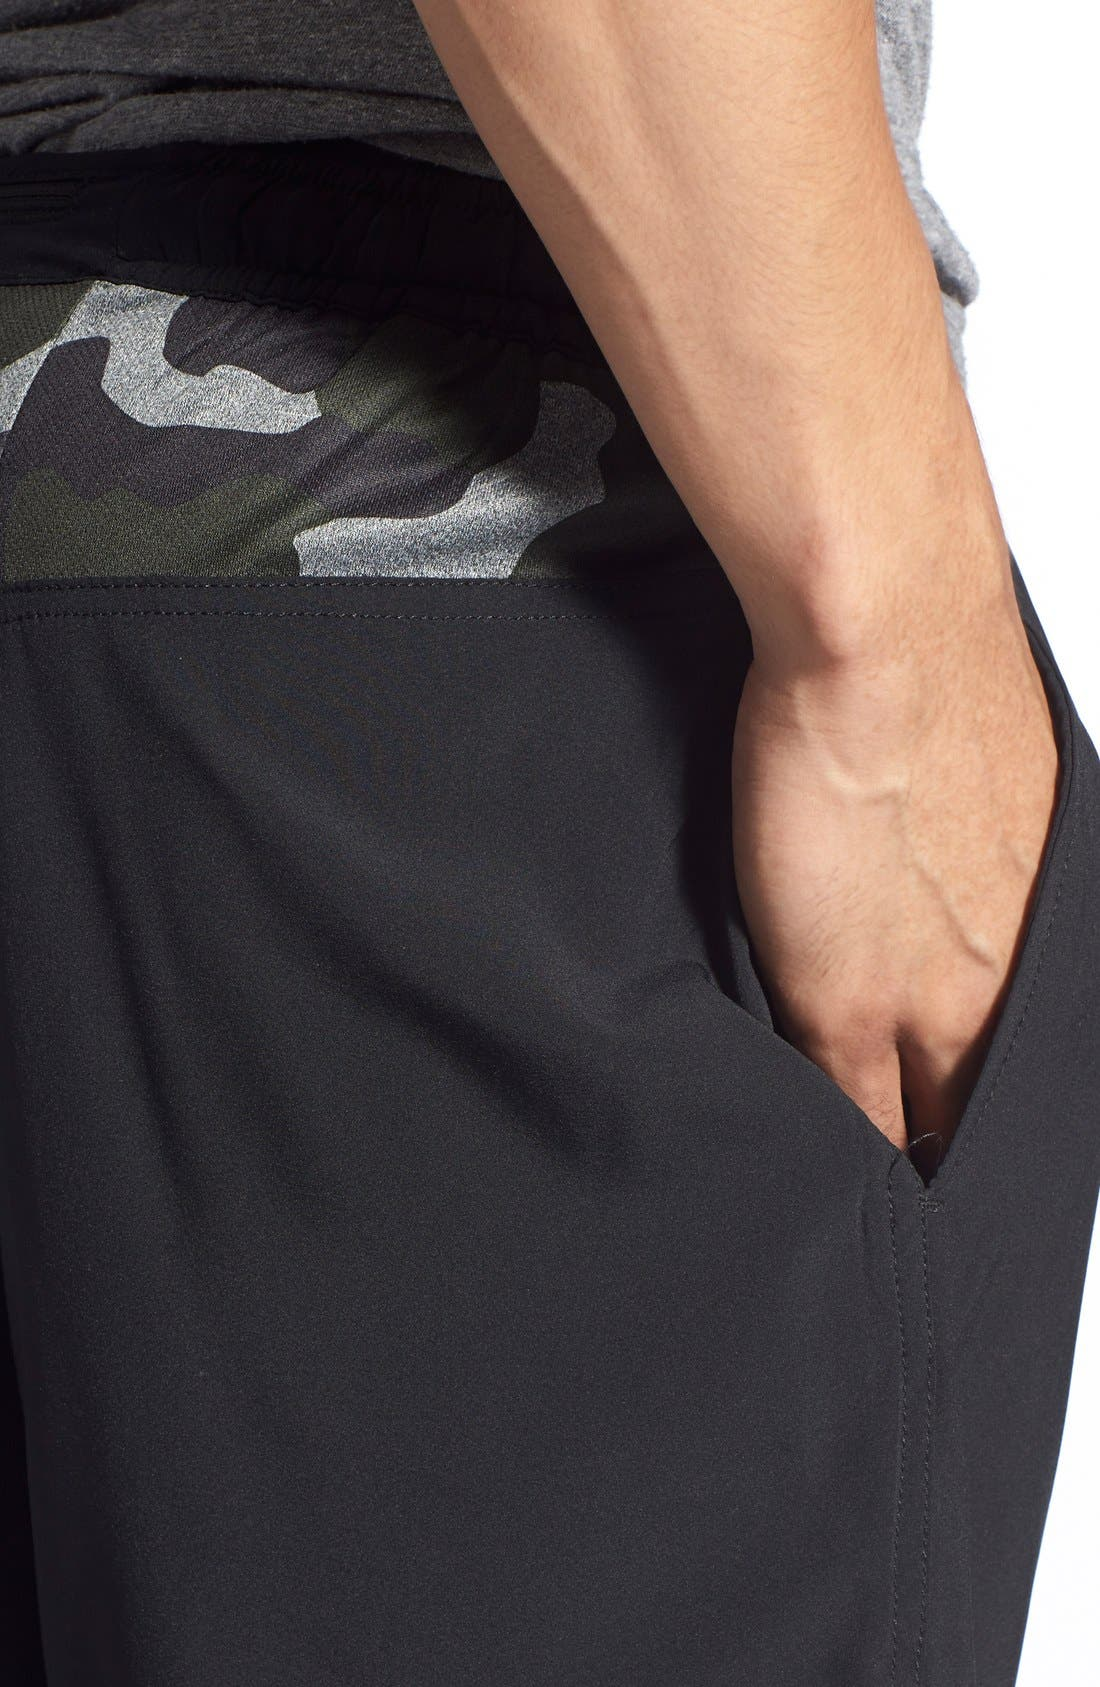 ATHLETIC RECON,                             '6.5' Stretch Woven Performance Shorts,                             Alternate thumbnail 2, color,                             001